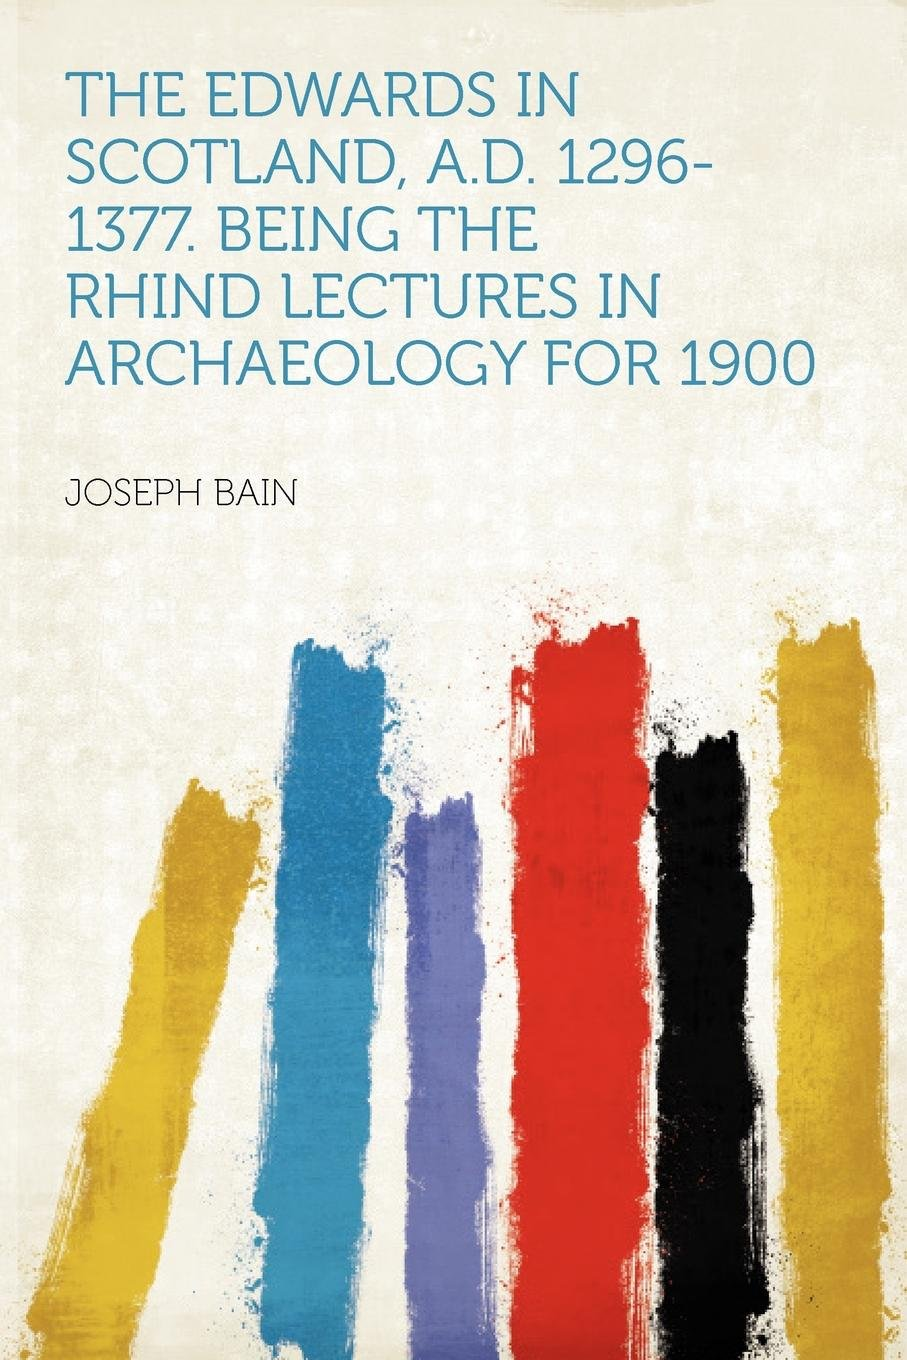 Download The Edwards in Scotland, A.D. 1296-1377. Being the Rhind Lectures in Archaeology for 1900 ebook